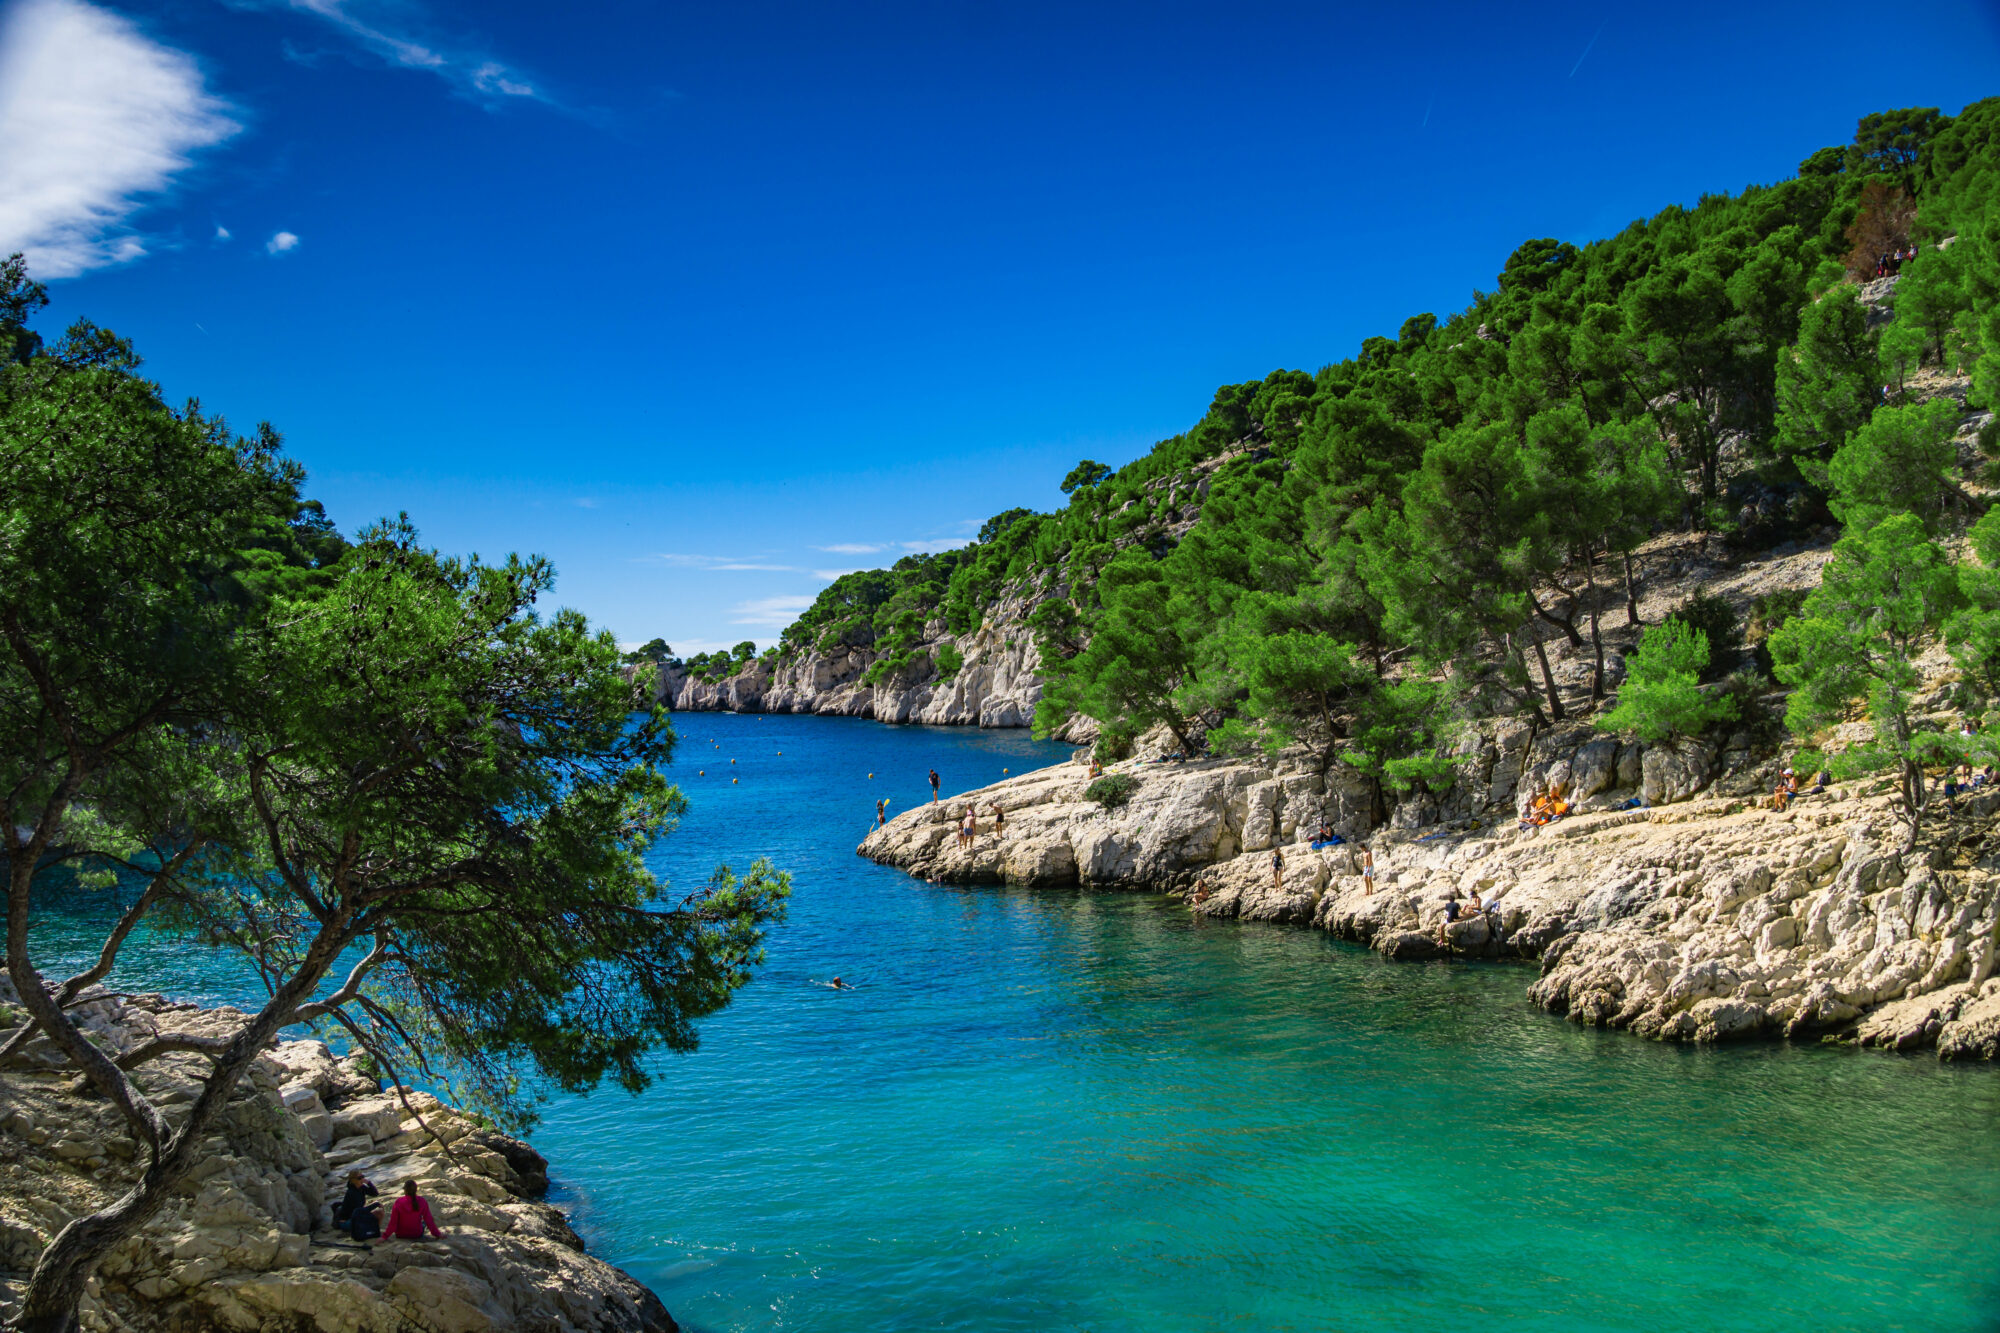 Wonderful viewpoint from the forest, Calanques National Park near Cassis fishing village, Provence